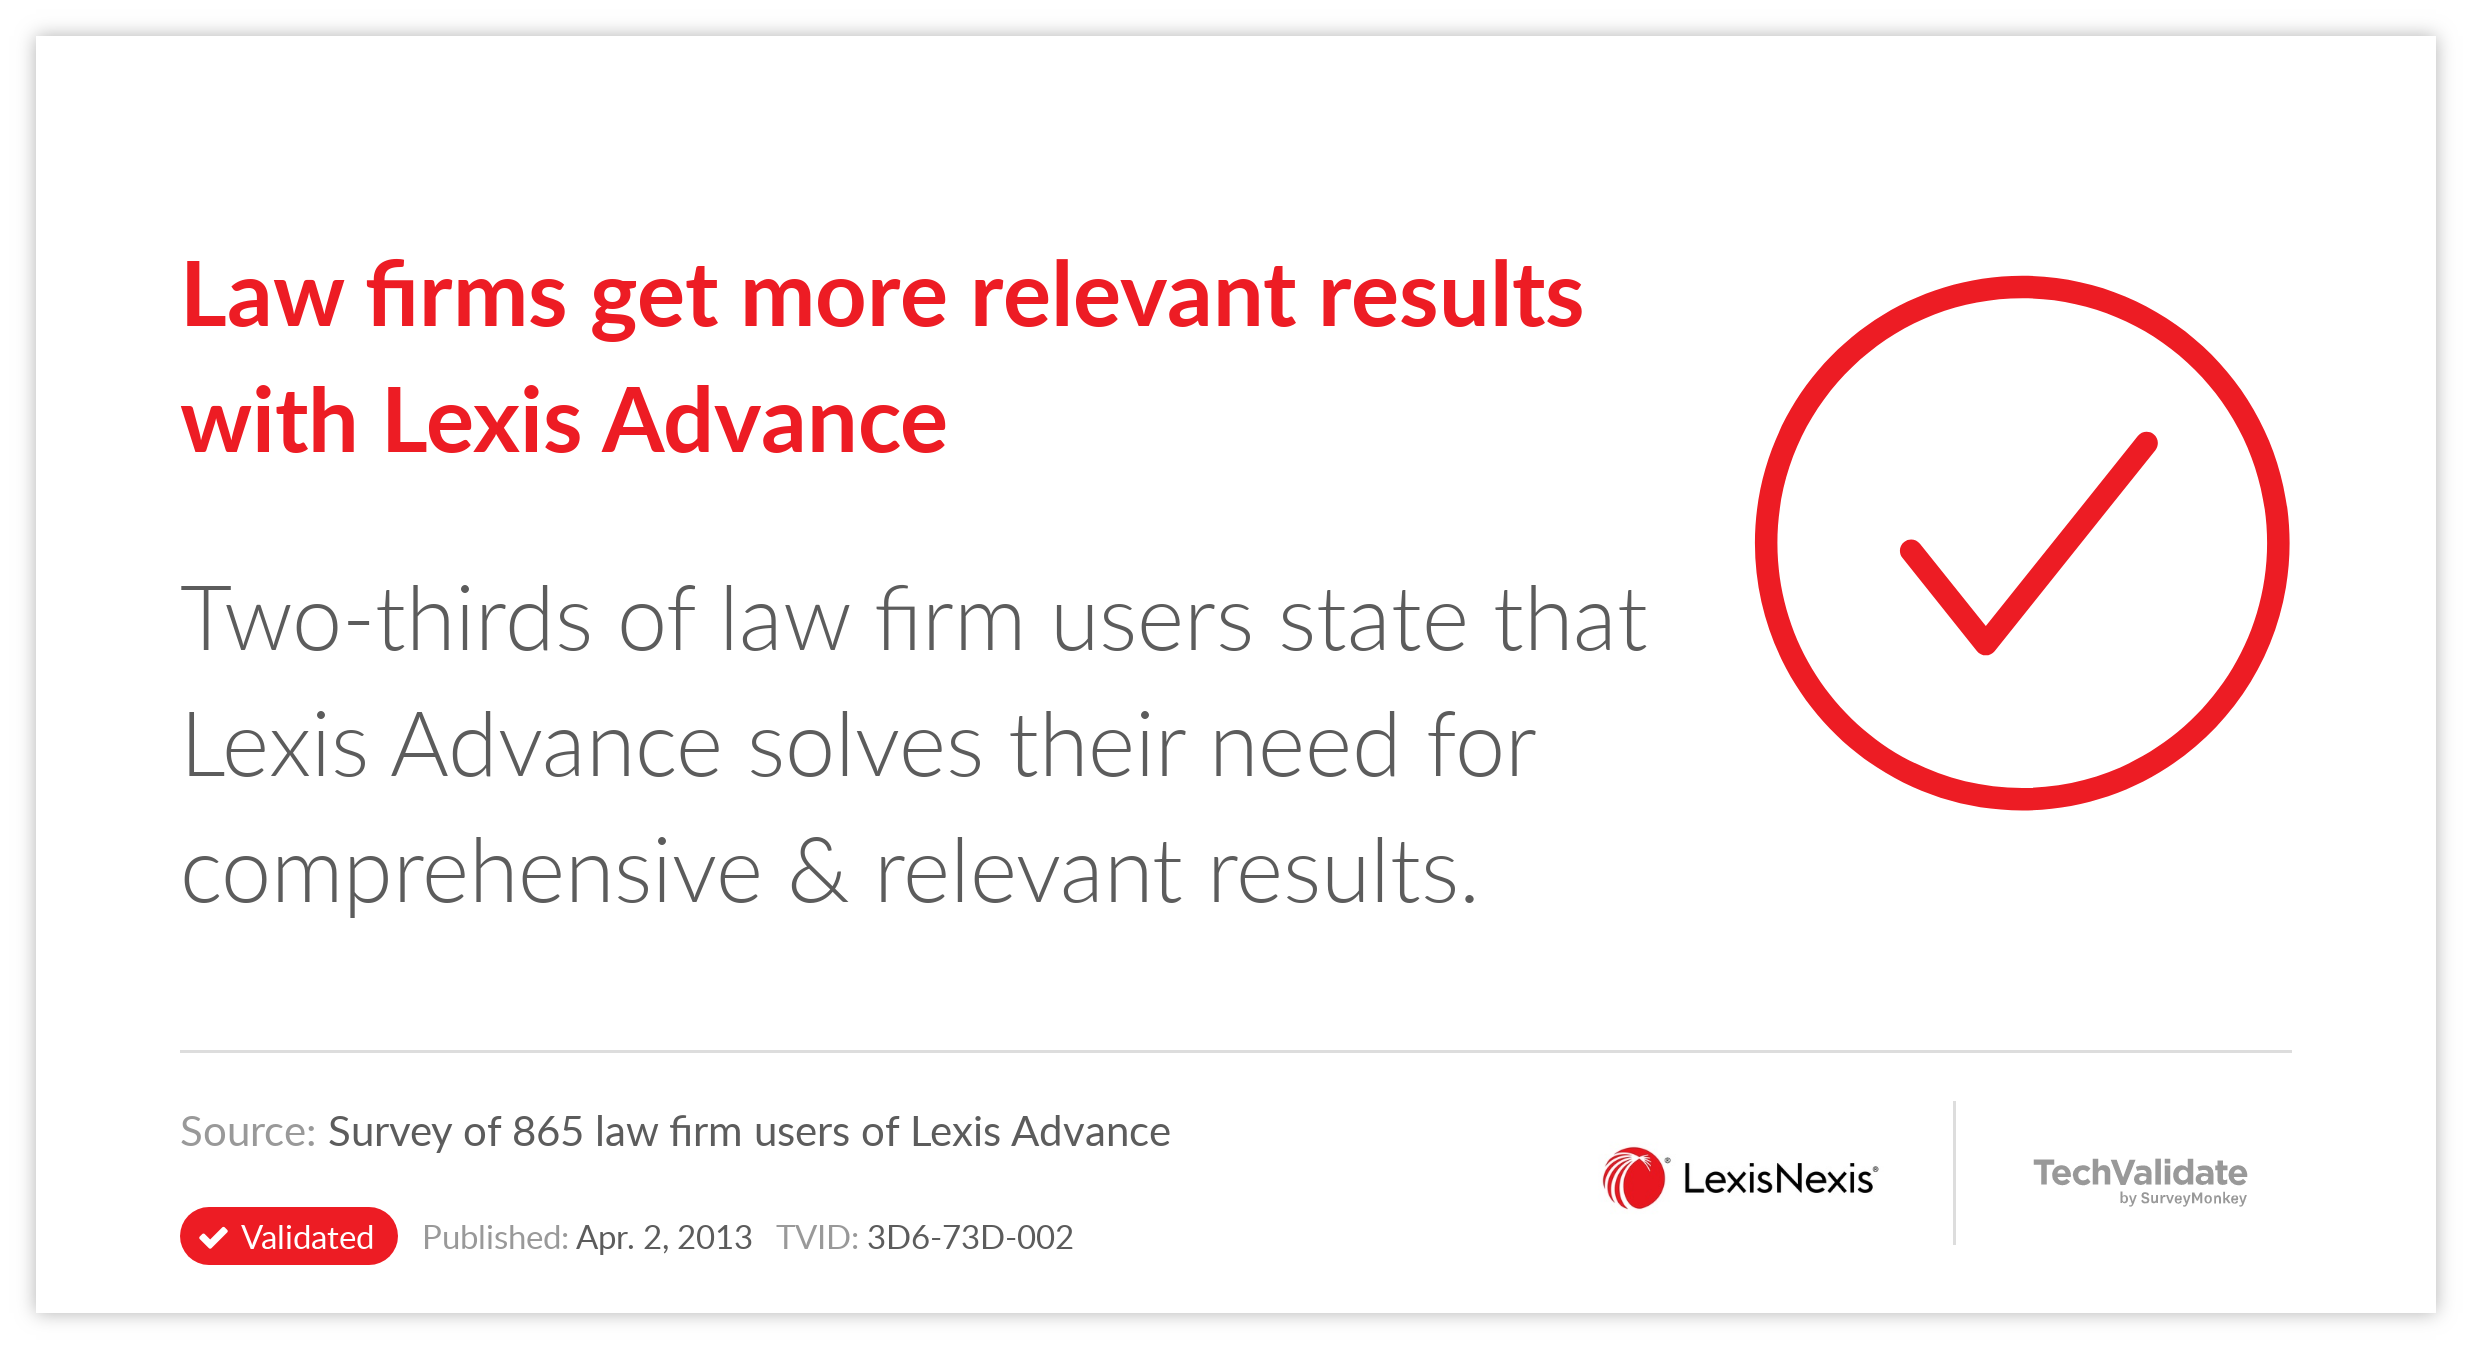 Law firms get more relevant results with Lexis Advance